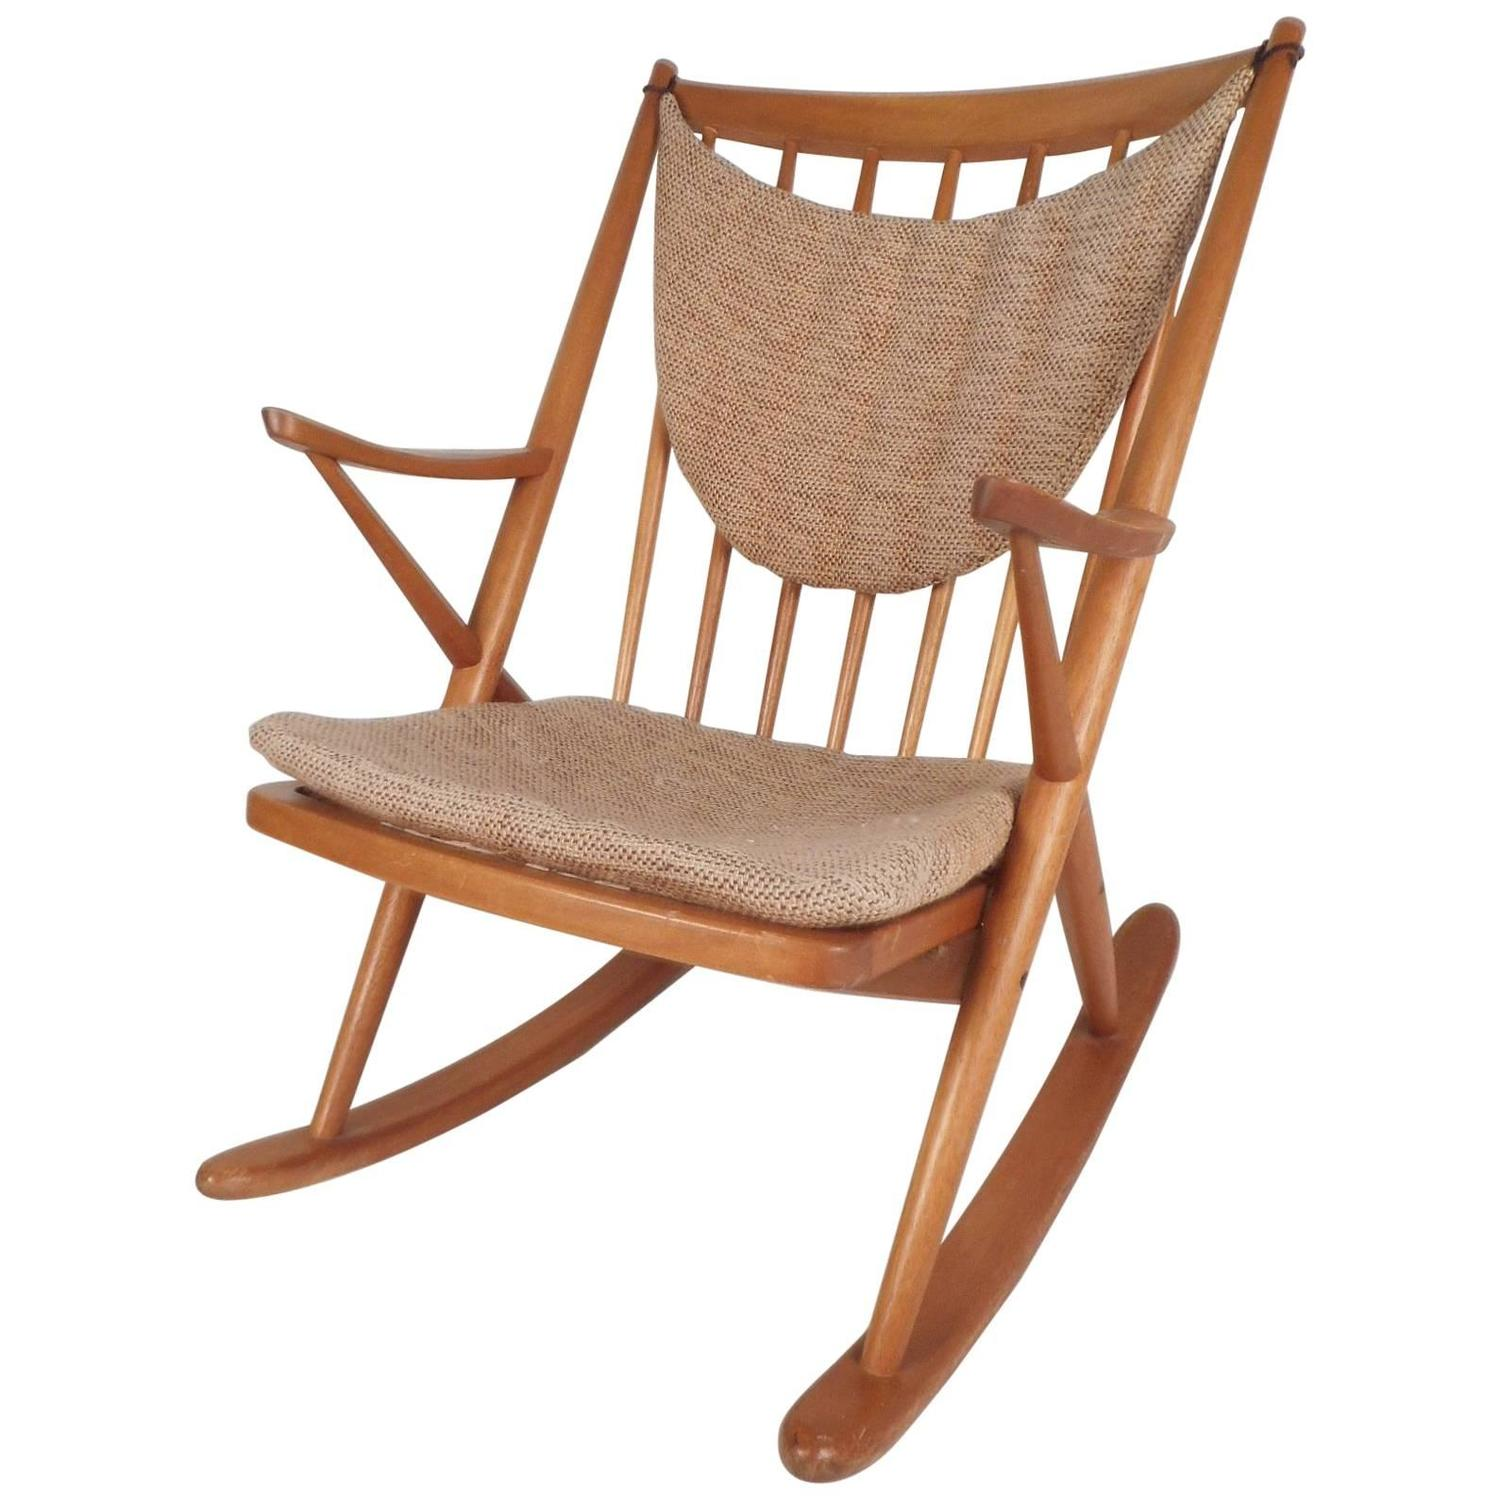 Danish Rocking Chairs 109 For Sale at 1stdibs